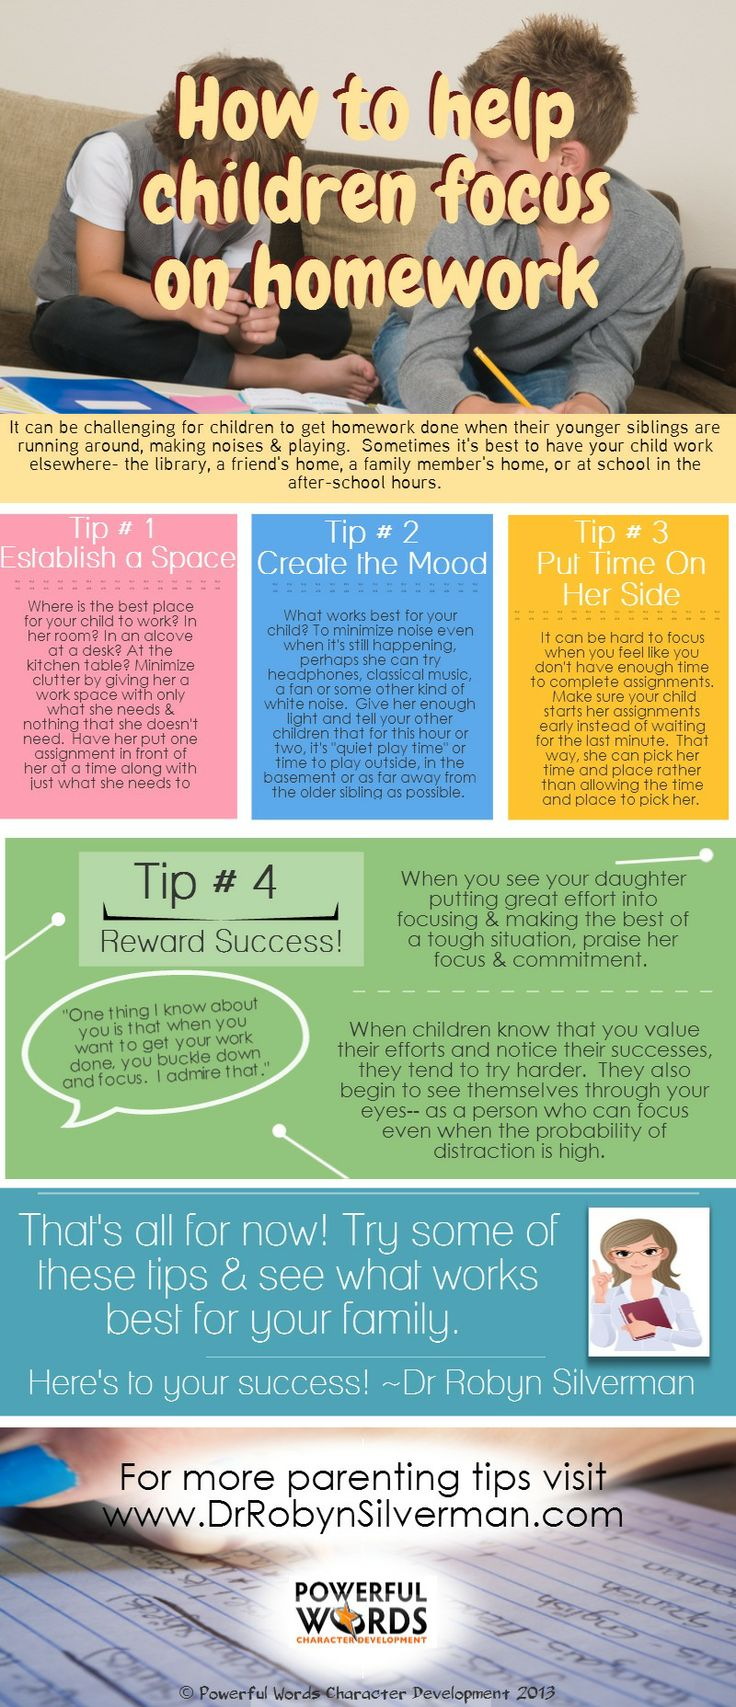 6 Simple Ways to Improve Your Child's Focus   Understood - For learning and thinking differences